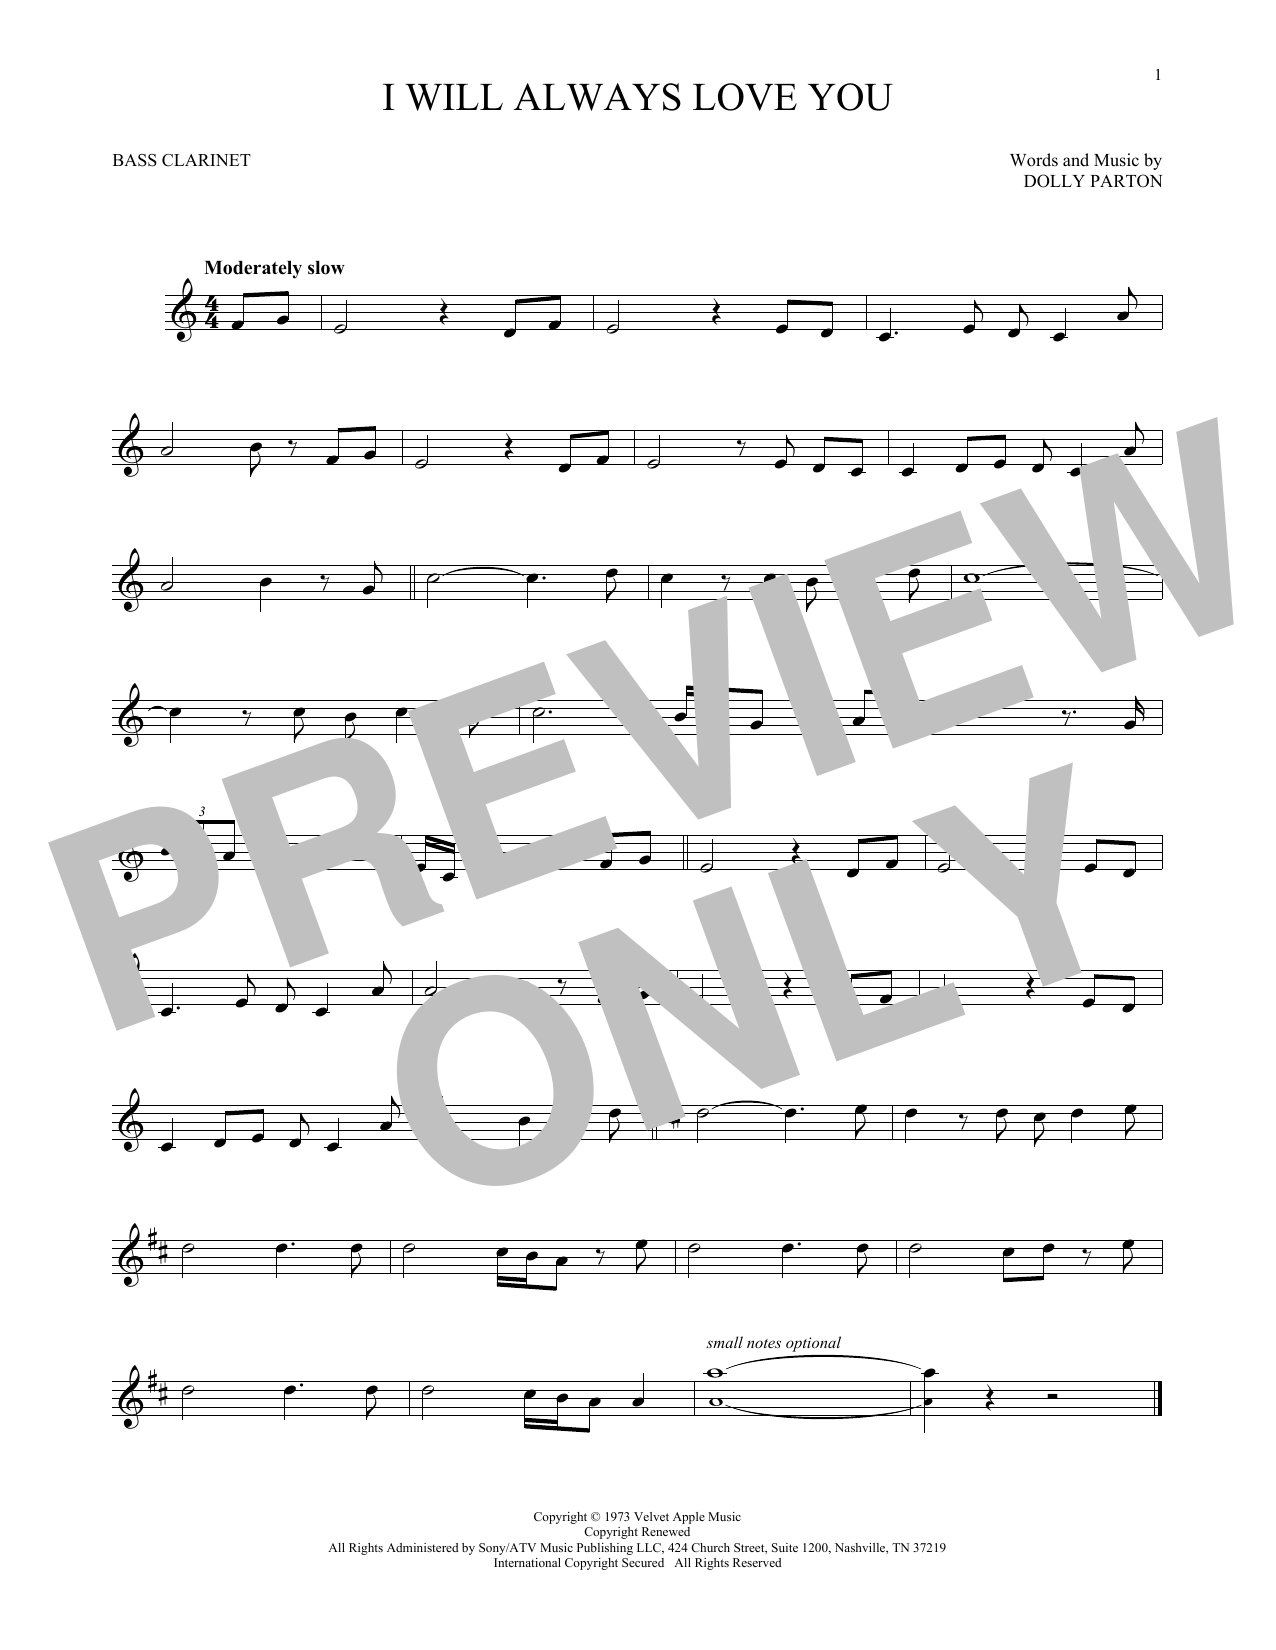 I Will Always Love You (Bass Clarinet Solo)